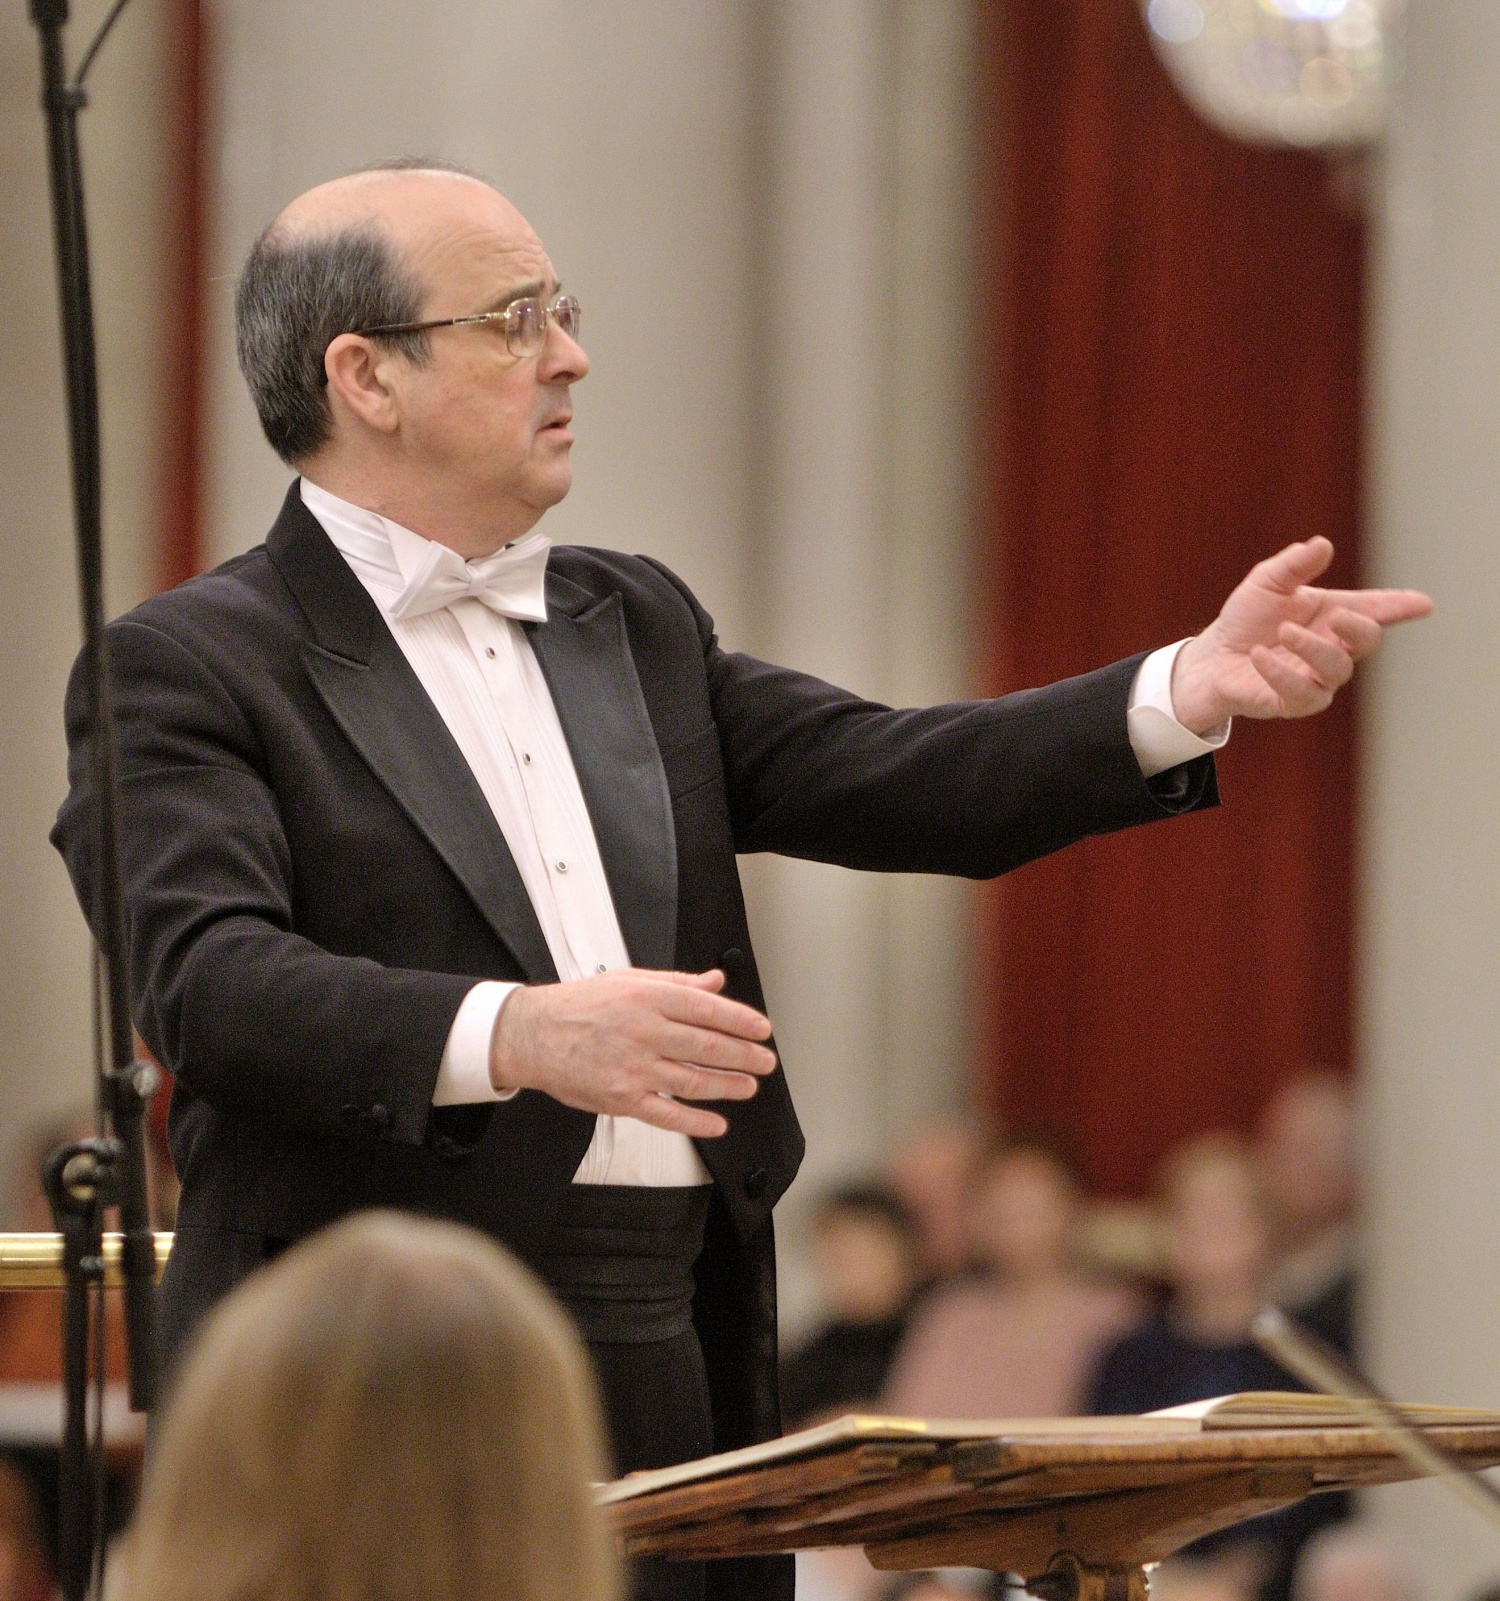 Conductor Vladimir Altschuler of the St Petersburg Symphony Orchestra